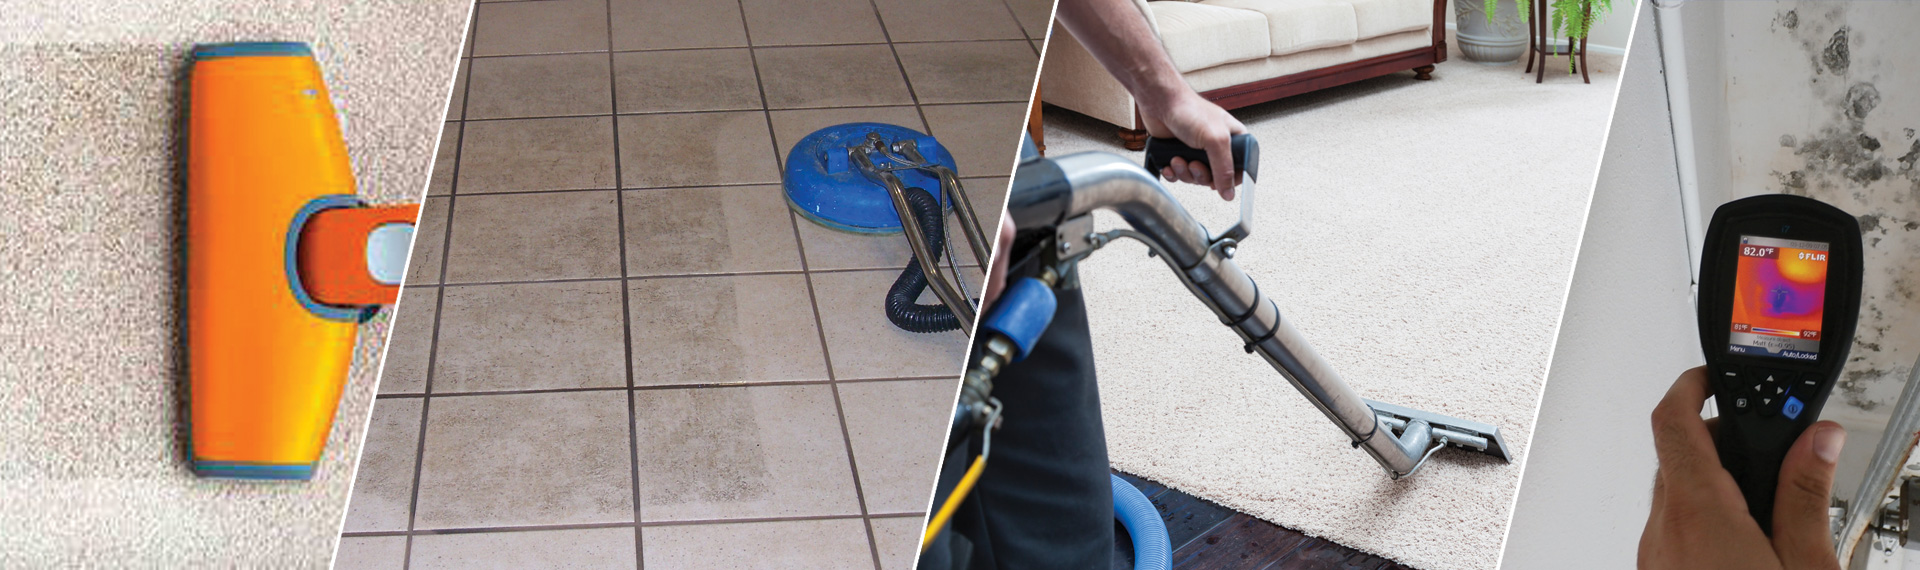 City Carpet Cleaners & Water Damage Restoration The Woodlands TX